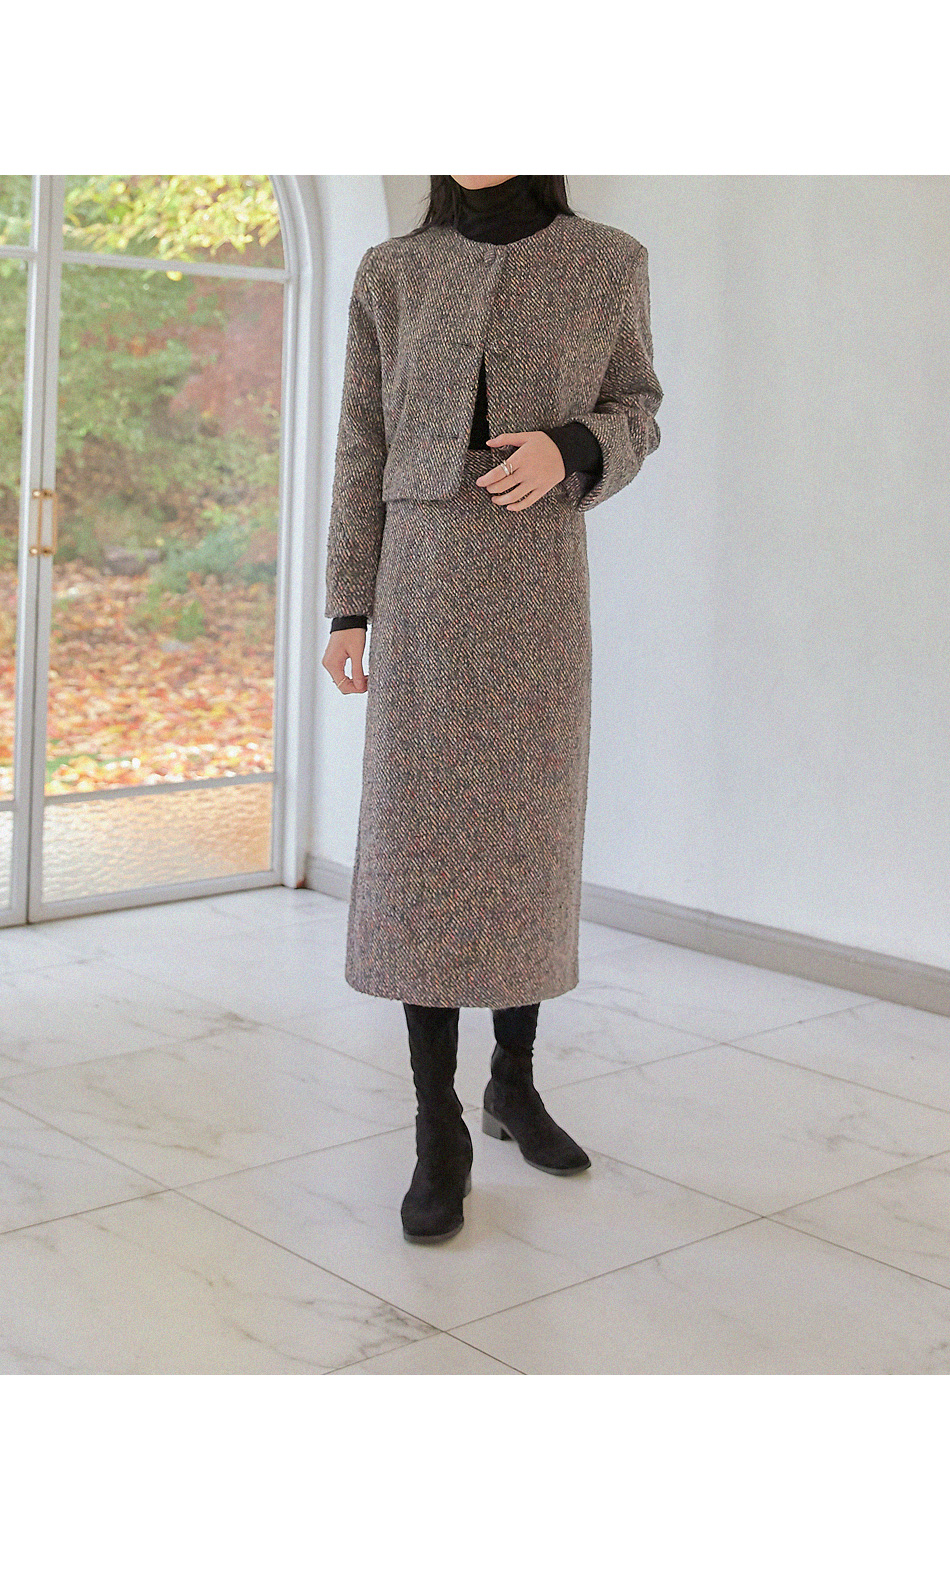 WOOL 70% TWEED SET-UP LONG SKIRT